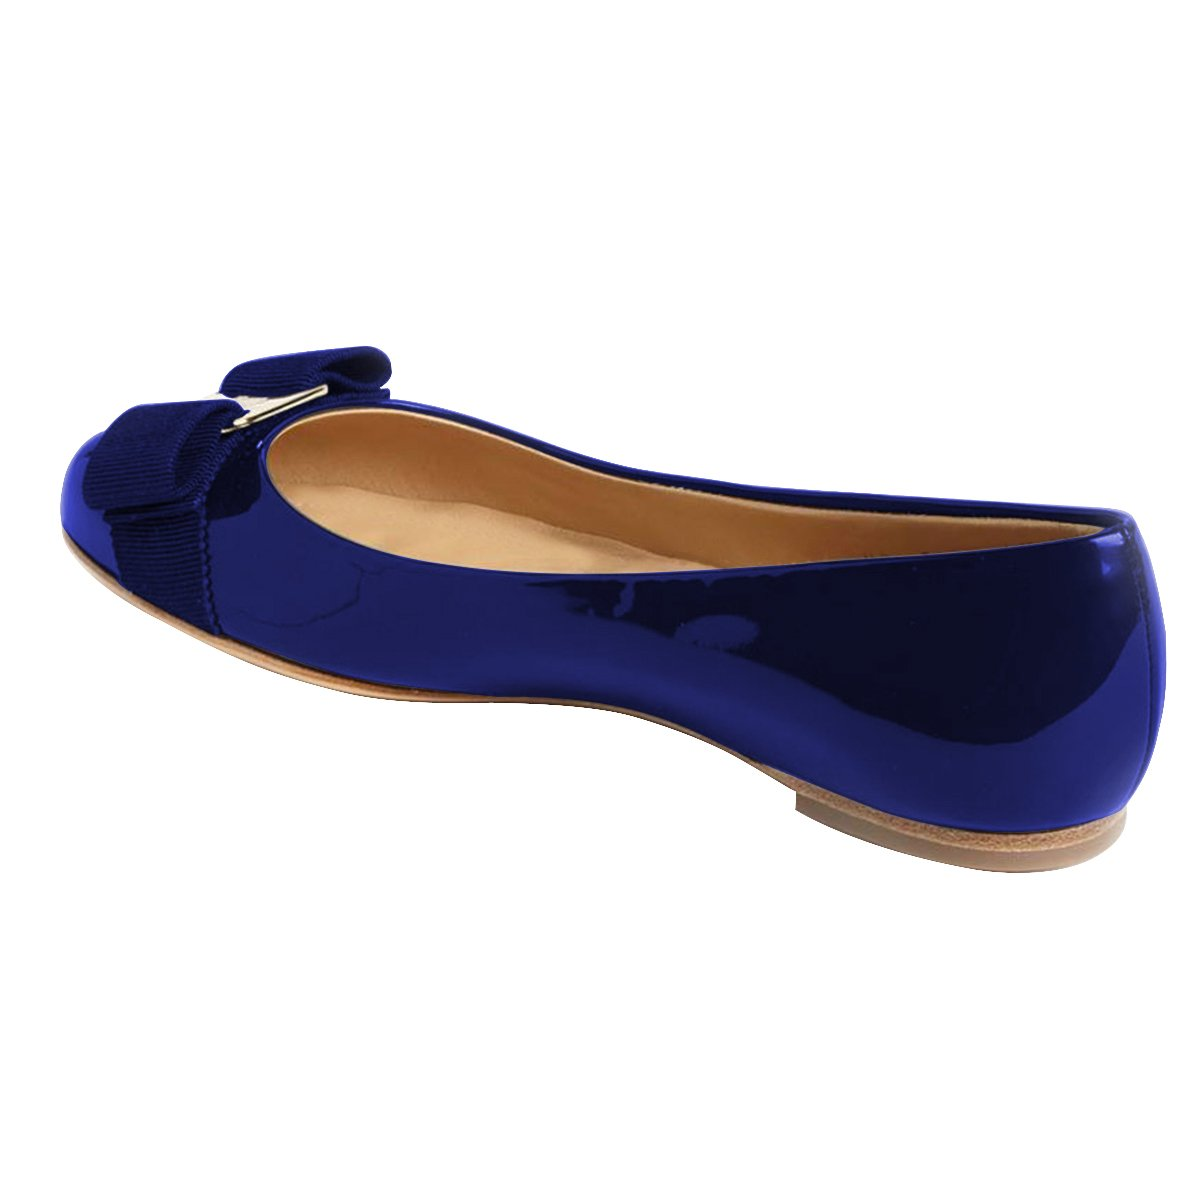 FSJ Women Cute Bowknot Round Toe Ballet Flats Slip On Casual Office Comfy Pumps Shoes Size 4-15 US B077P37118 9.5 B(M) US|Blue